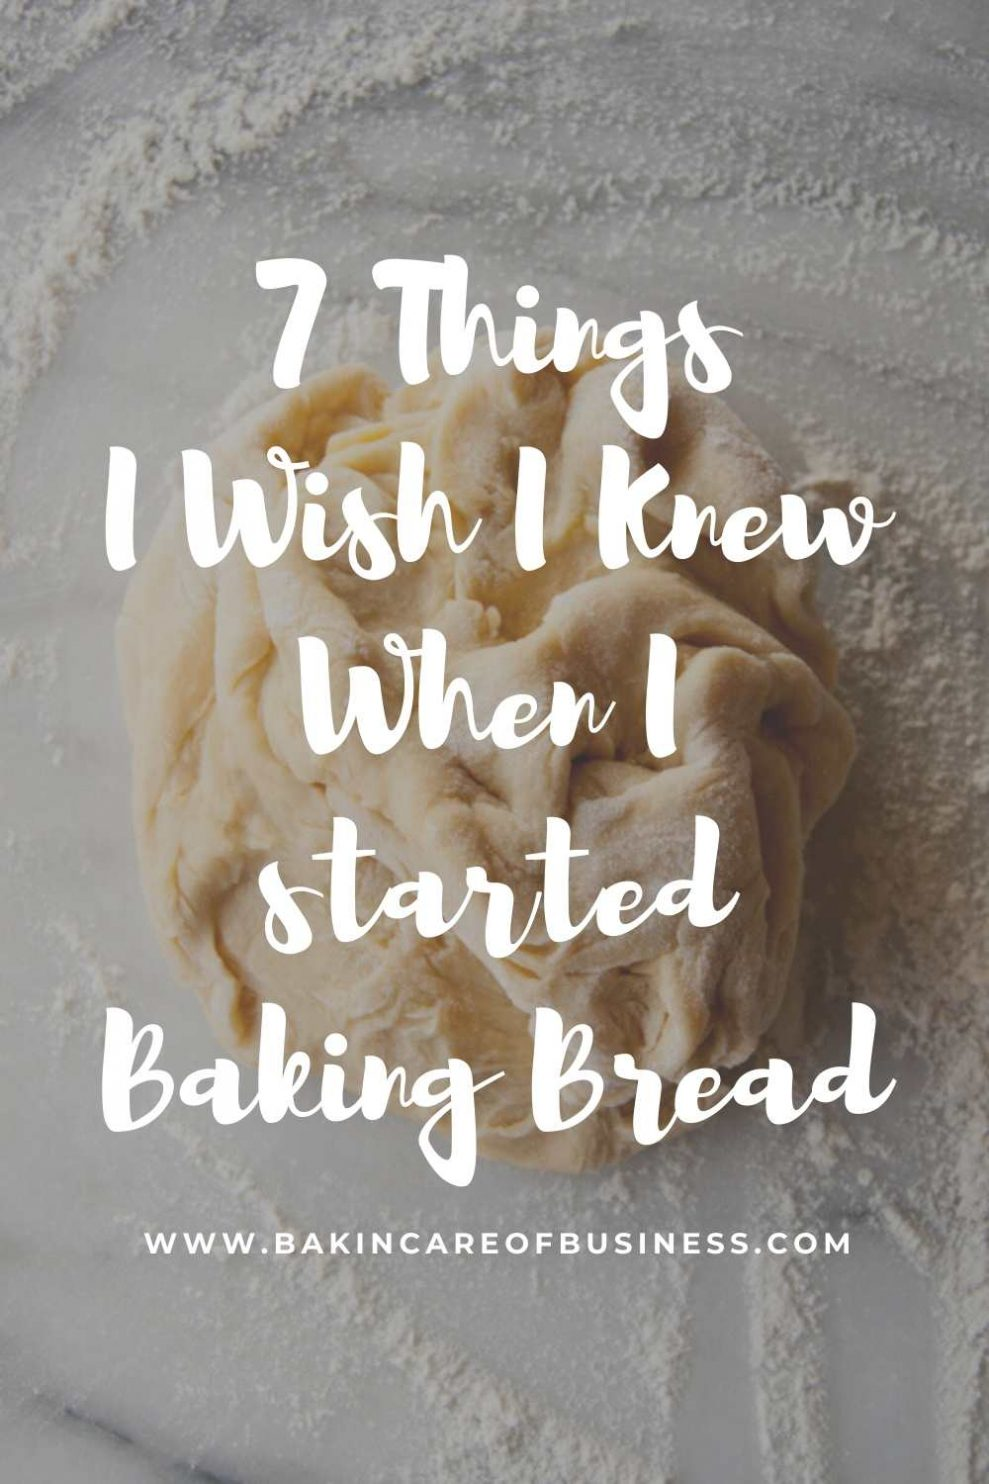 7 Things I wish I'd Known When I started Baking Bread